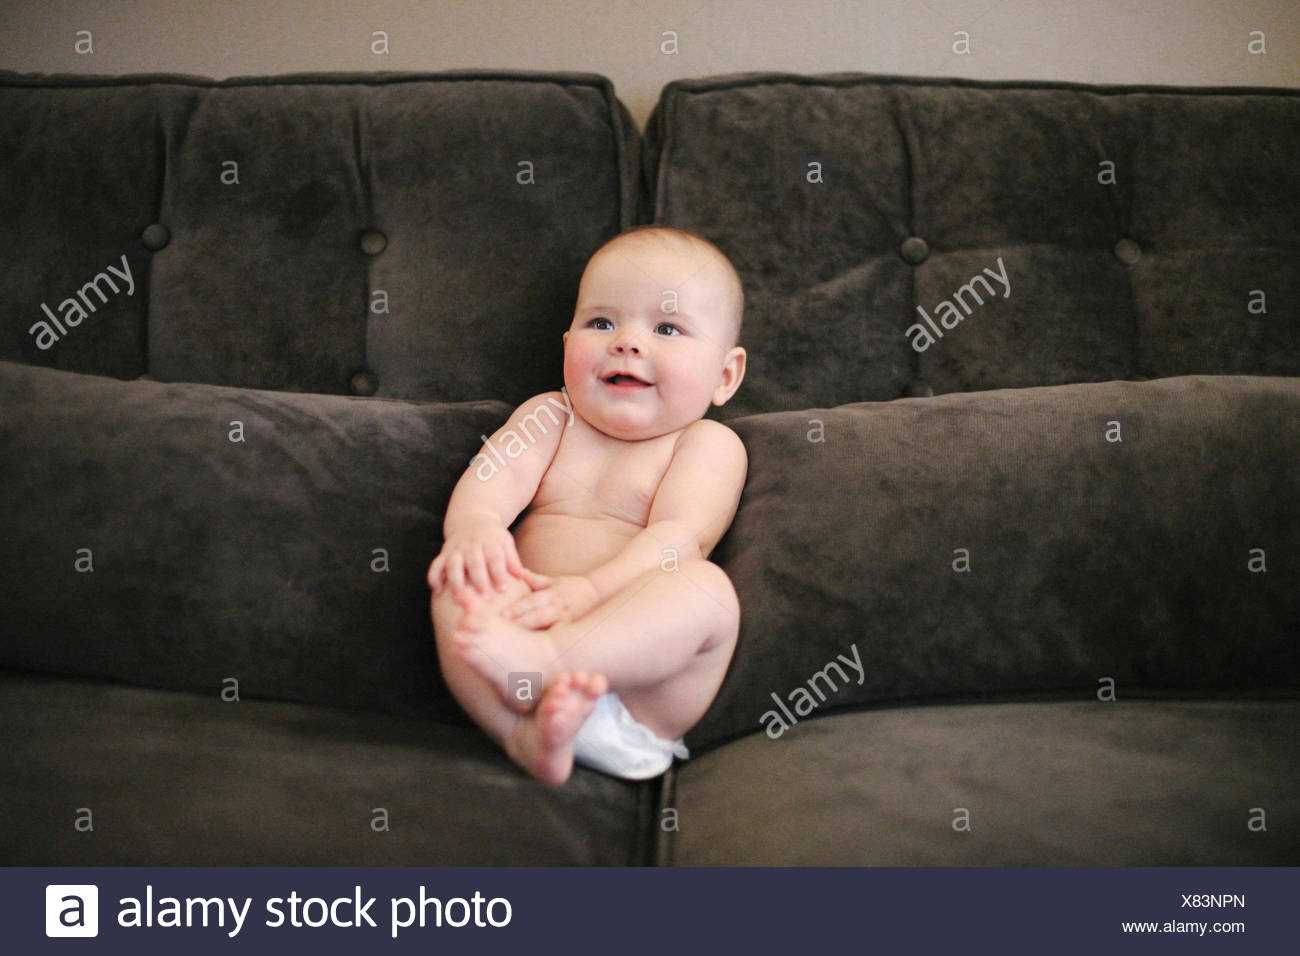 A baby sitting propped up on a sofa wearing a diaper. - Stock Image